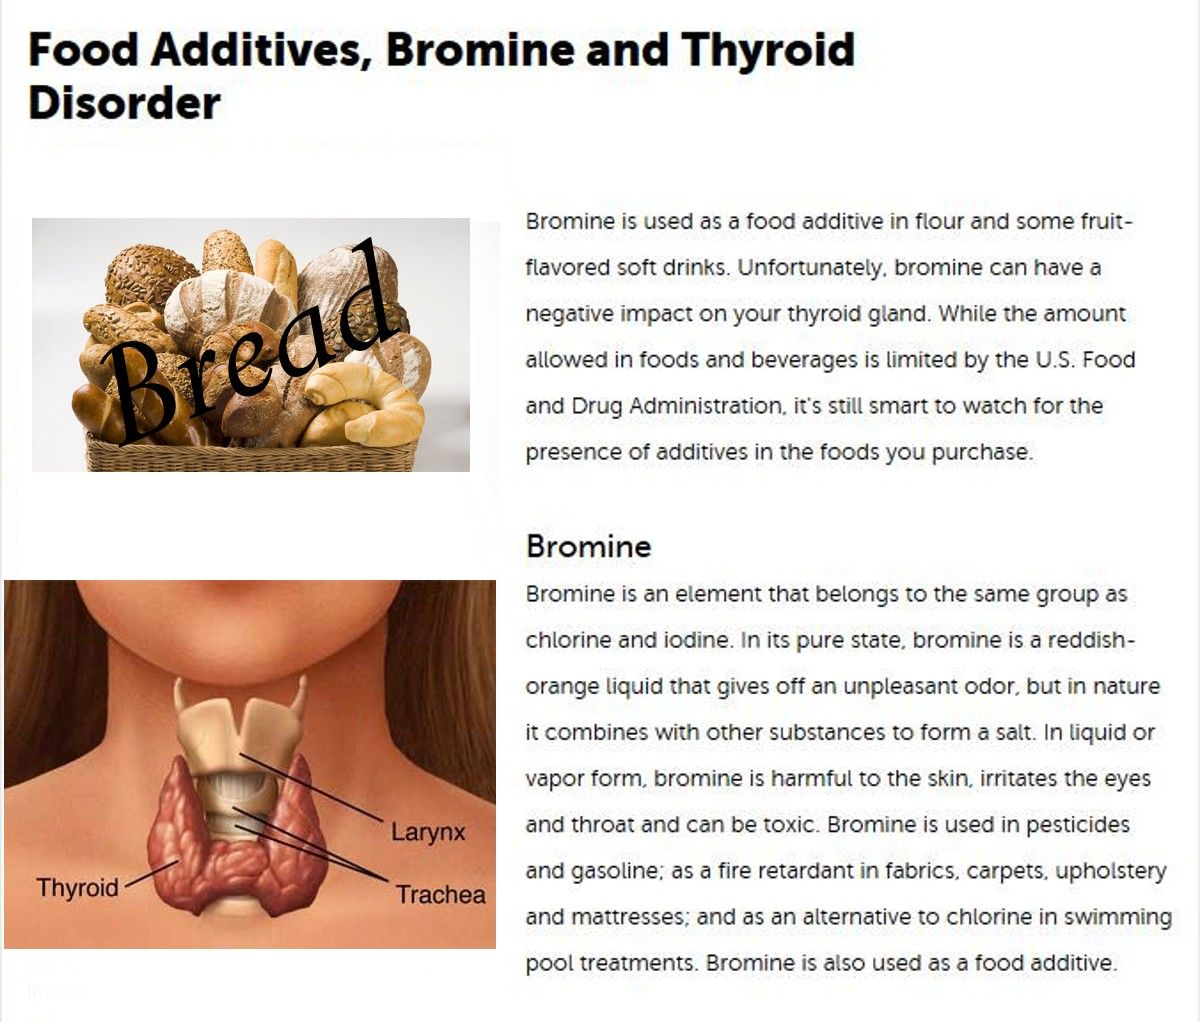 bromine toxic to the thyroid and they add it to bread and